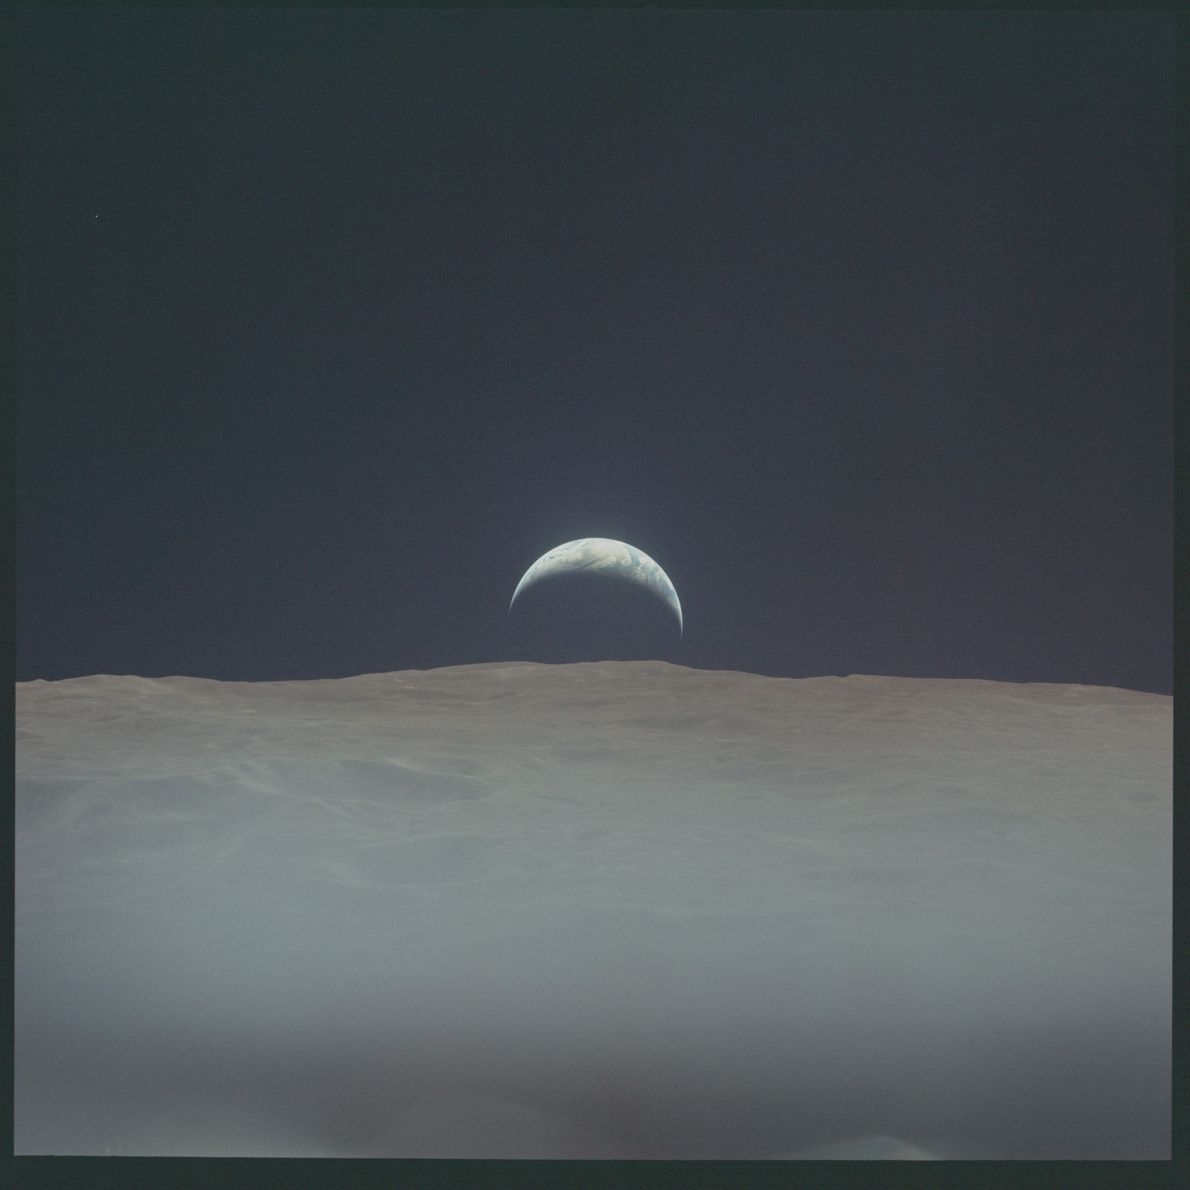 In this photograph taken during the second successful mission to land on the moon, Apollo 12 ...